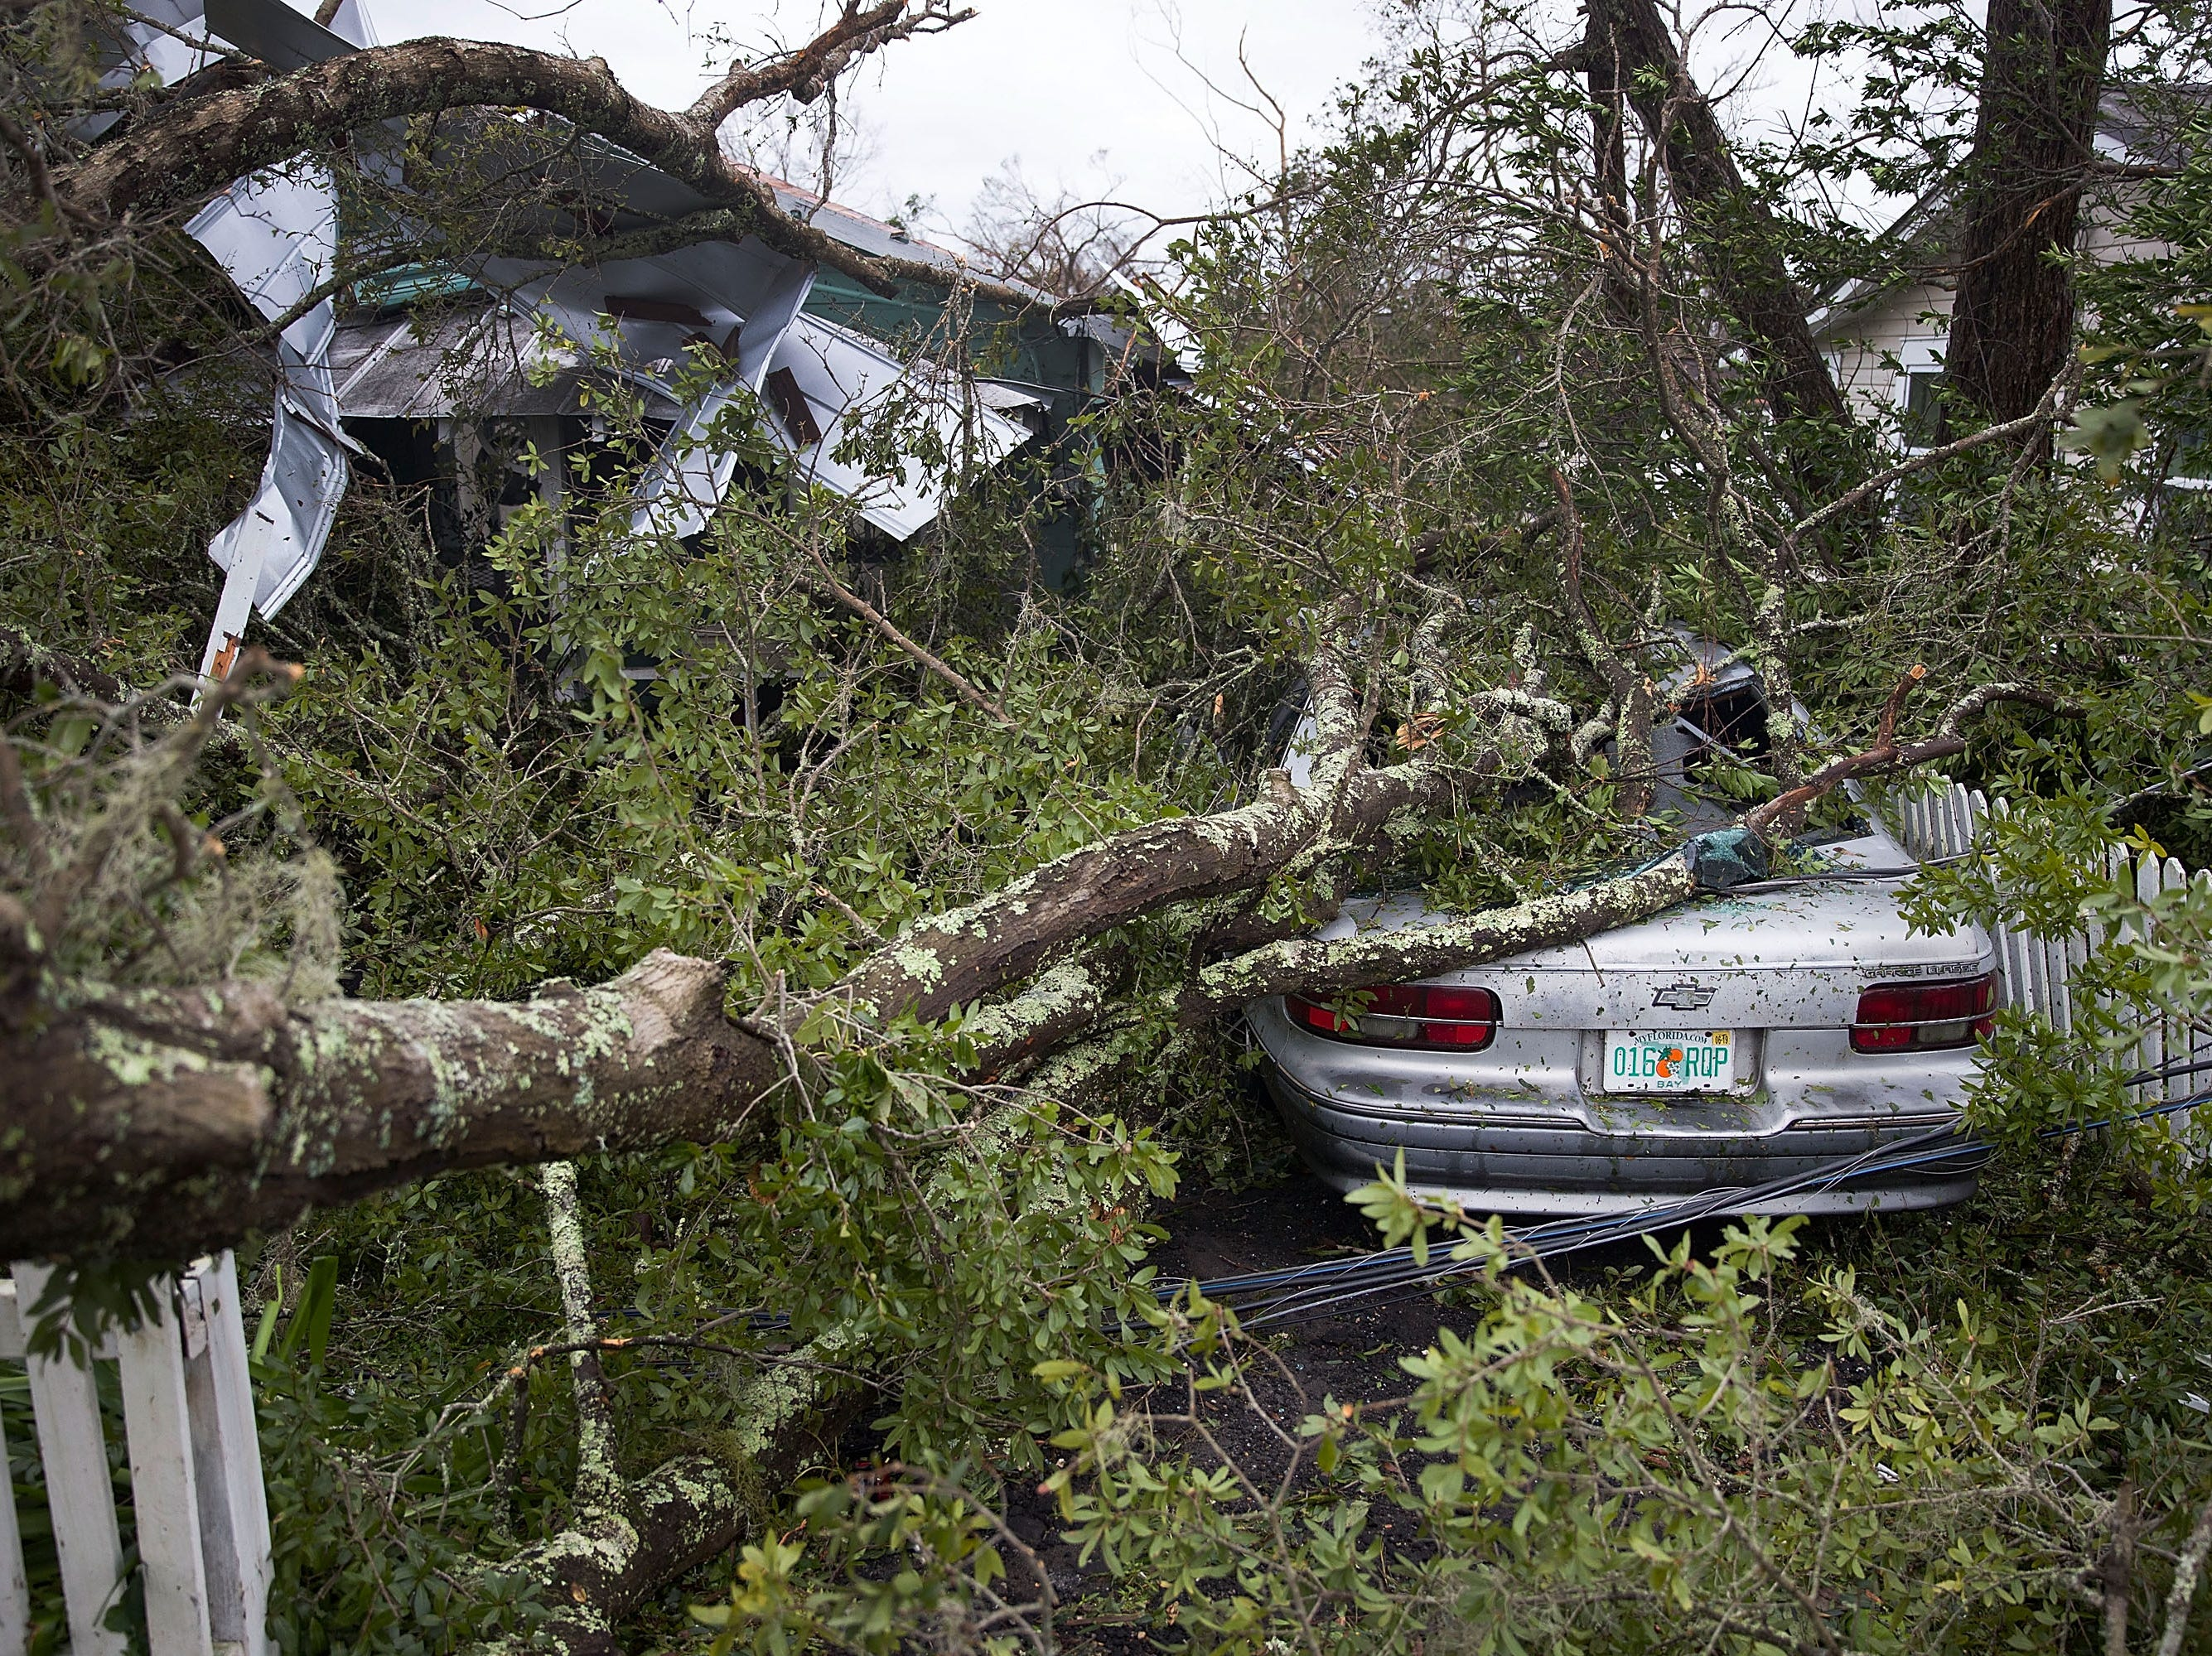 PANAMA CITY, FL - OCTOBER 10:  A tree lays on a home and car after hurricane Michael passed through the area on October 10, 2018 in Panama City, Florida. The hurricane hit the Florida Panhandle as a category 4 storm.